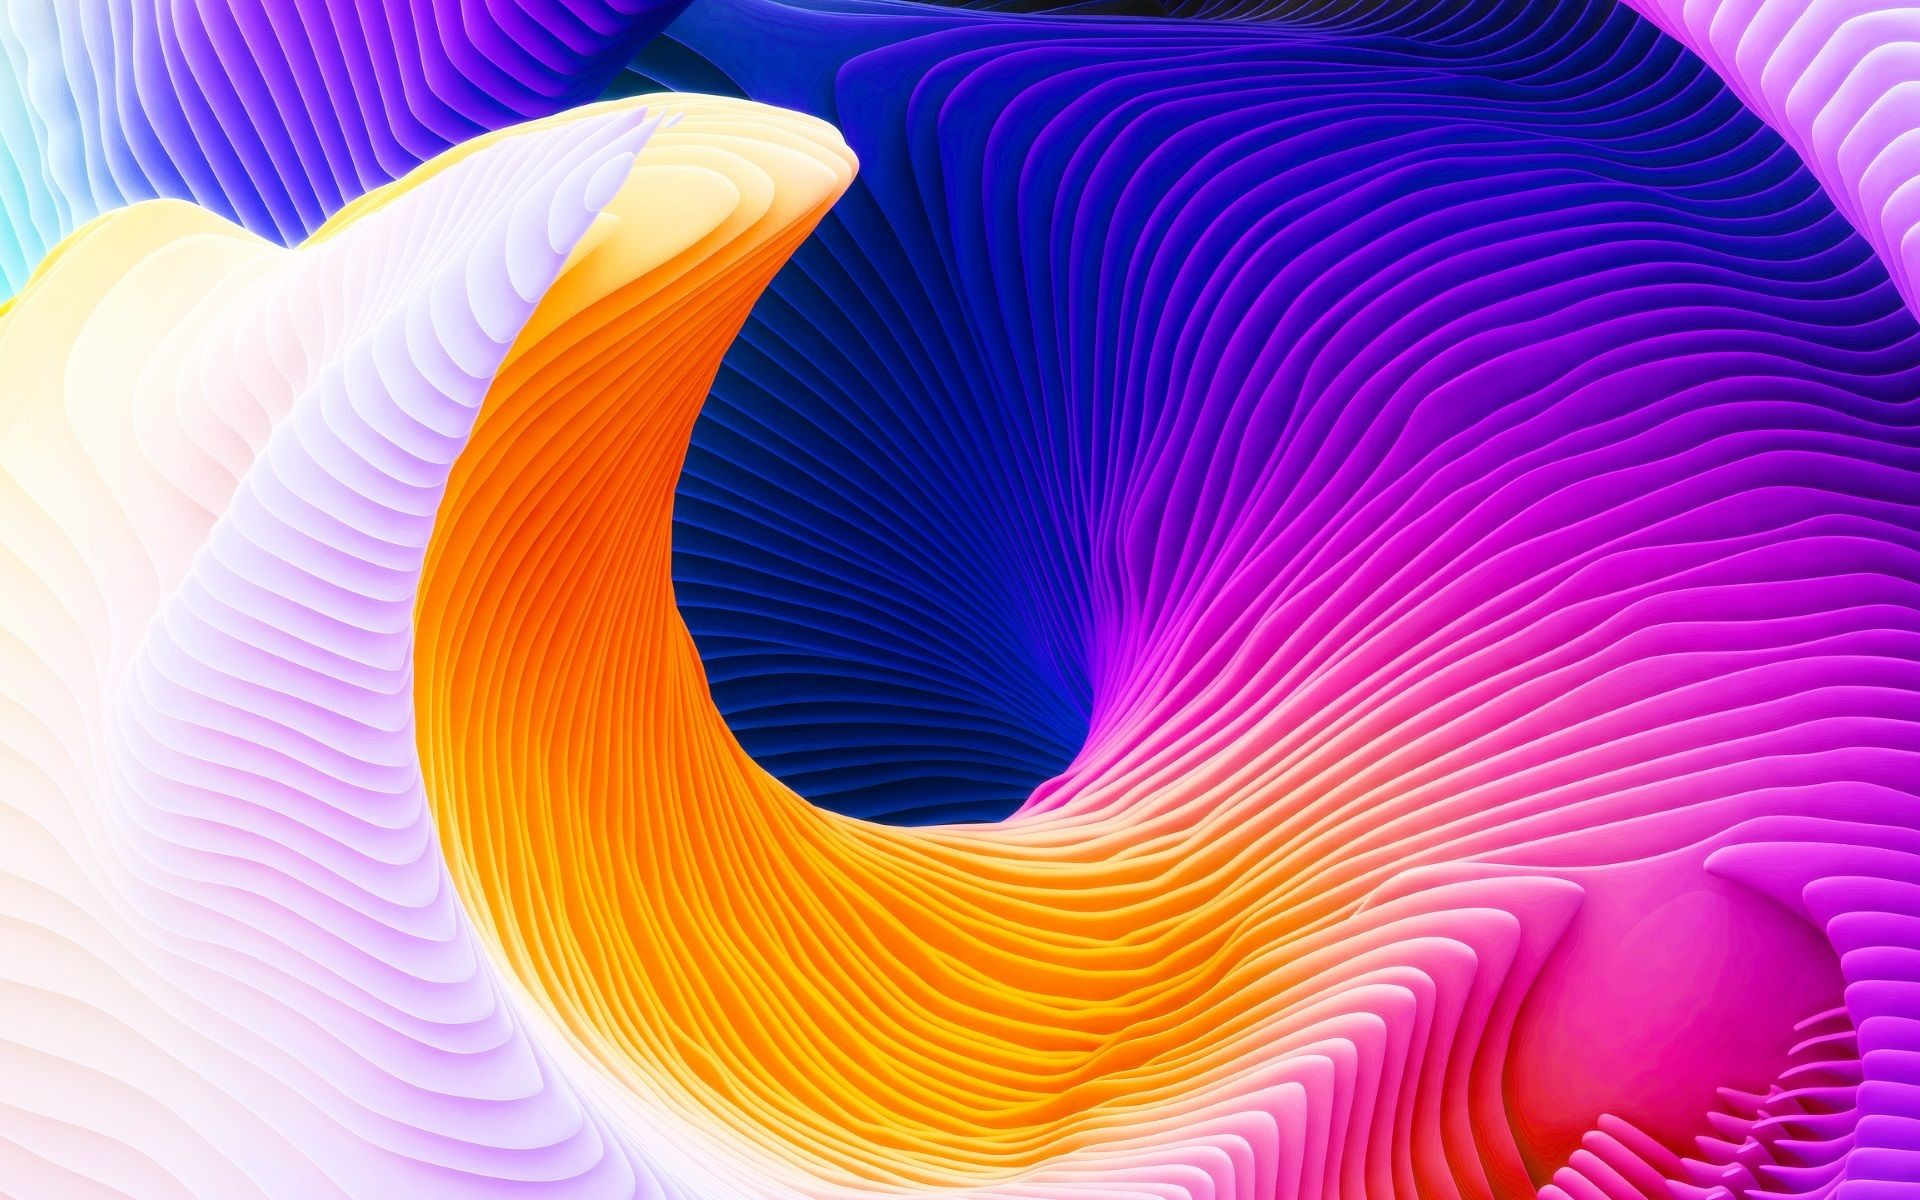 Wallpaper · The Super Spirals HD Wallpapers. 4K Wallpapers